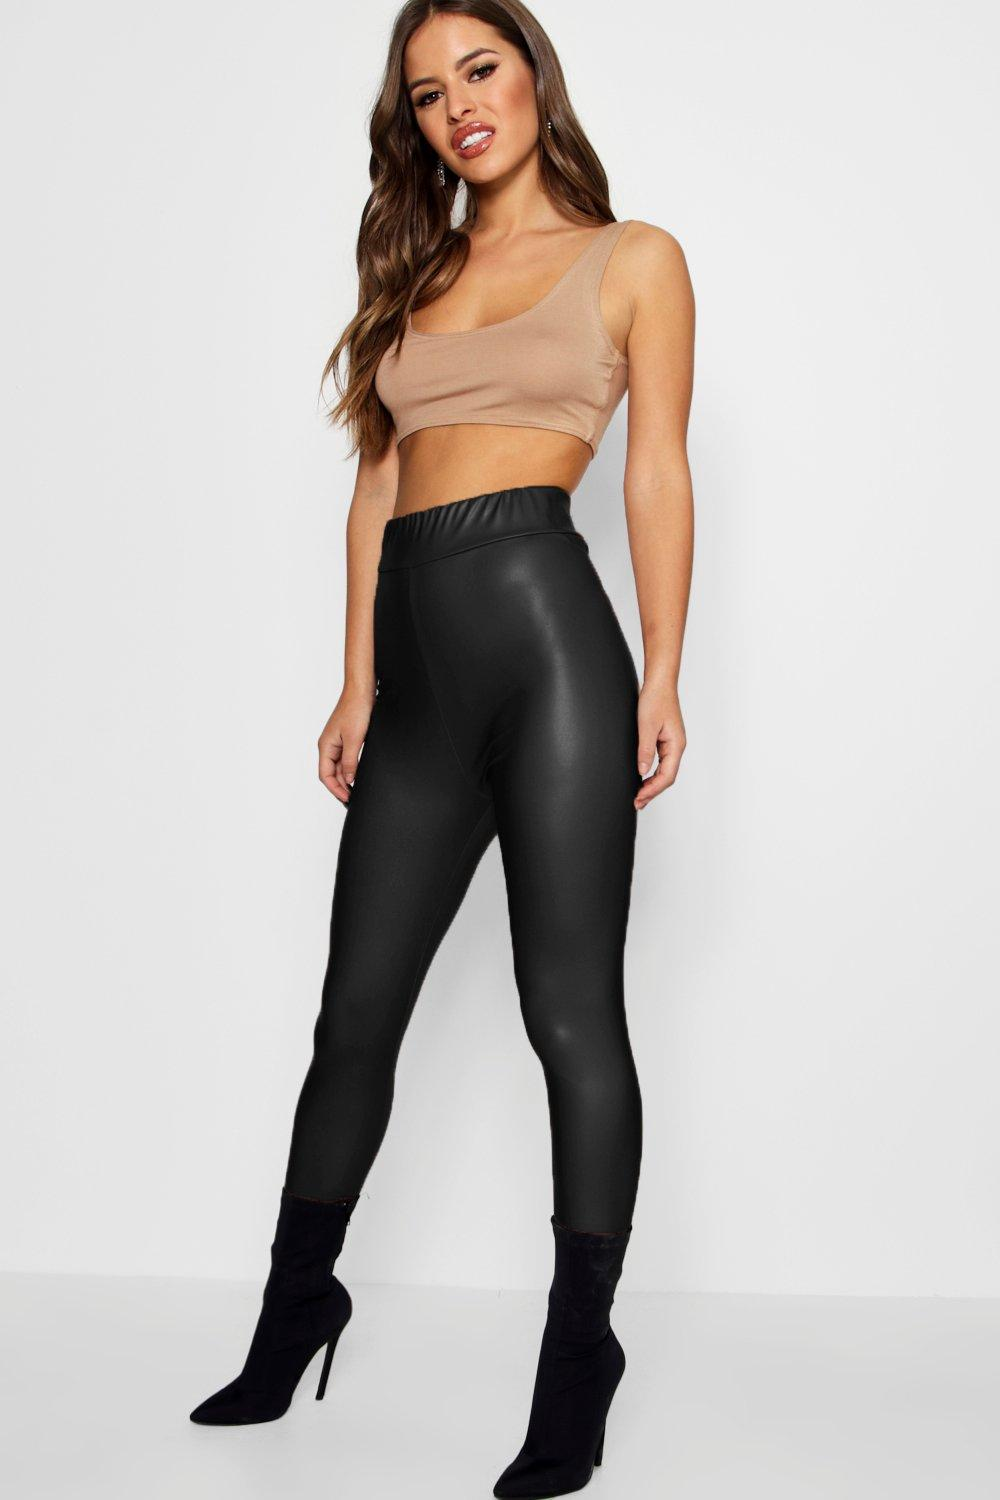 Petite Sandi Matte Leather High Waist Leggings black